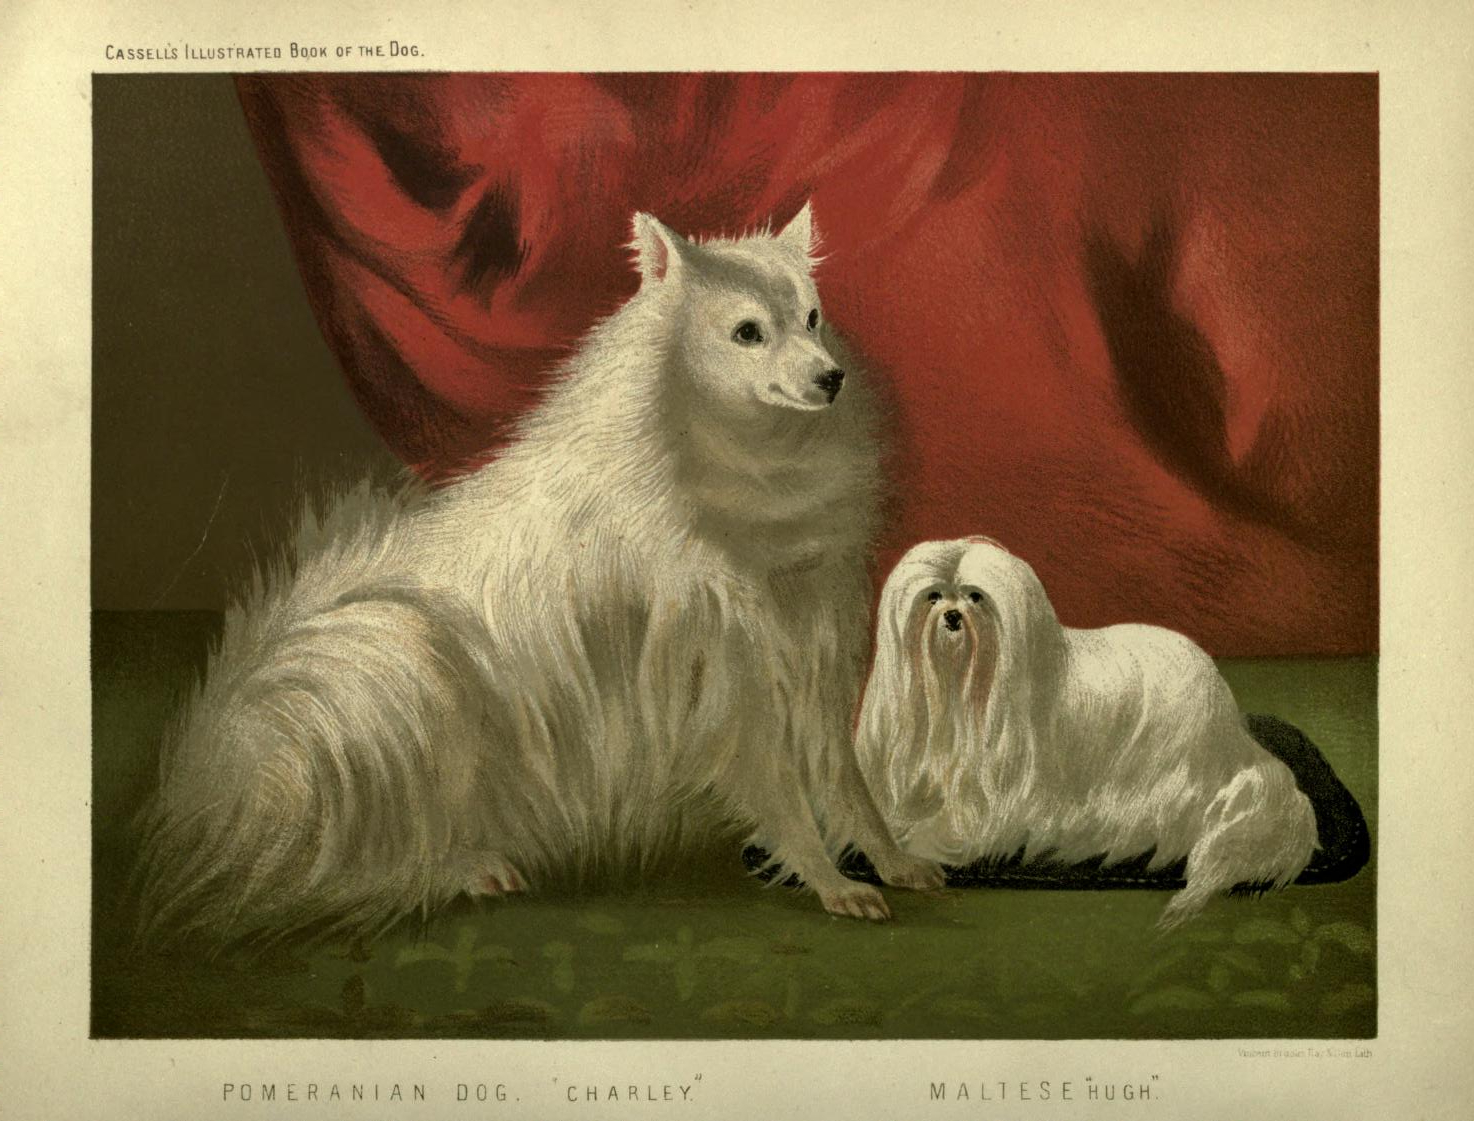 Free vintage Pomeranian illustration public domain.